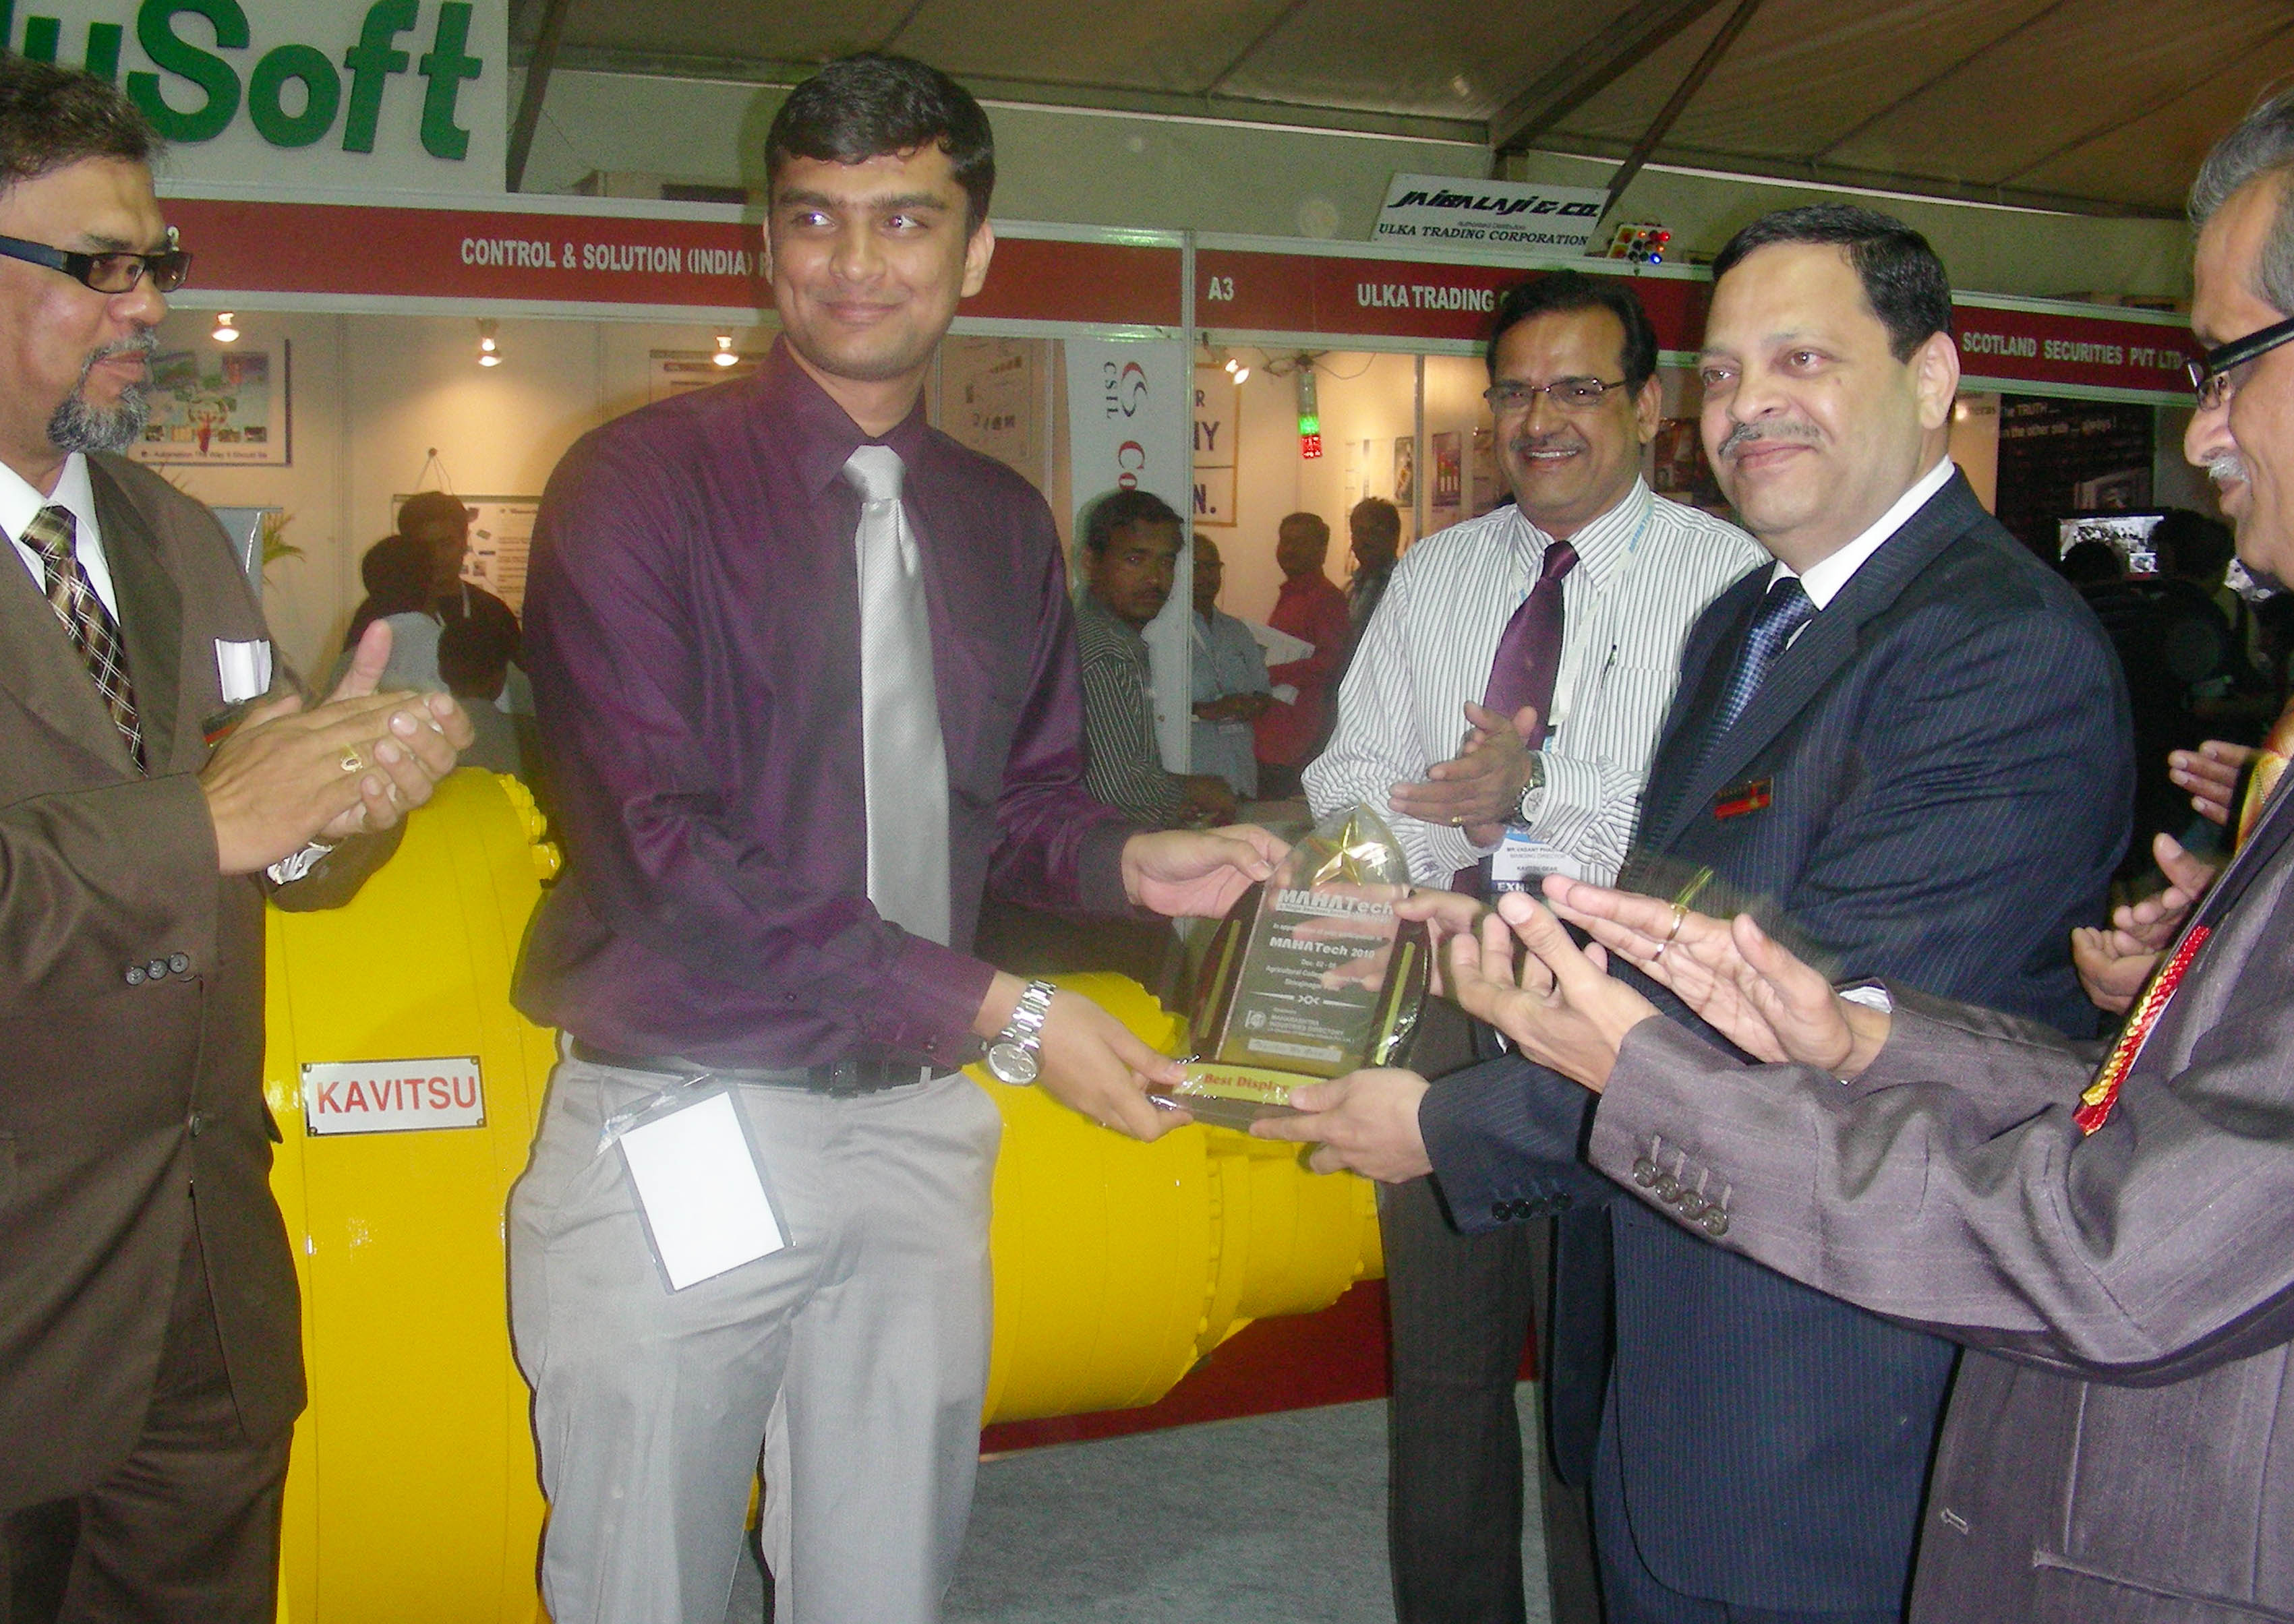 First Best Display Award in Mahatech 2010 Exhibition (08/12/2010)